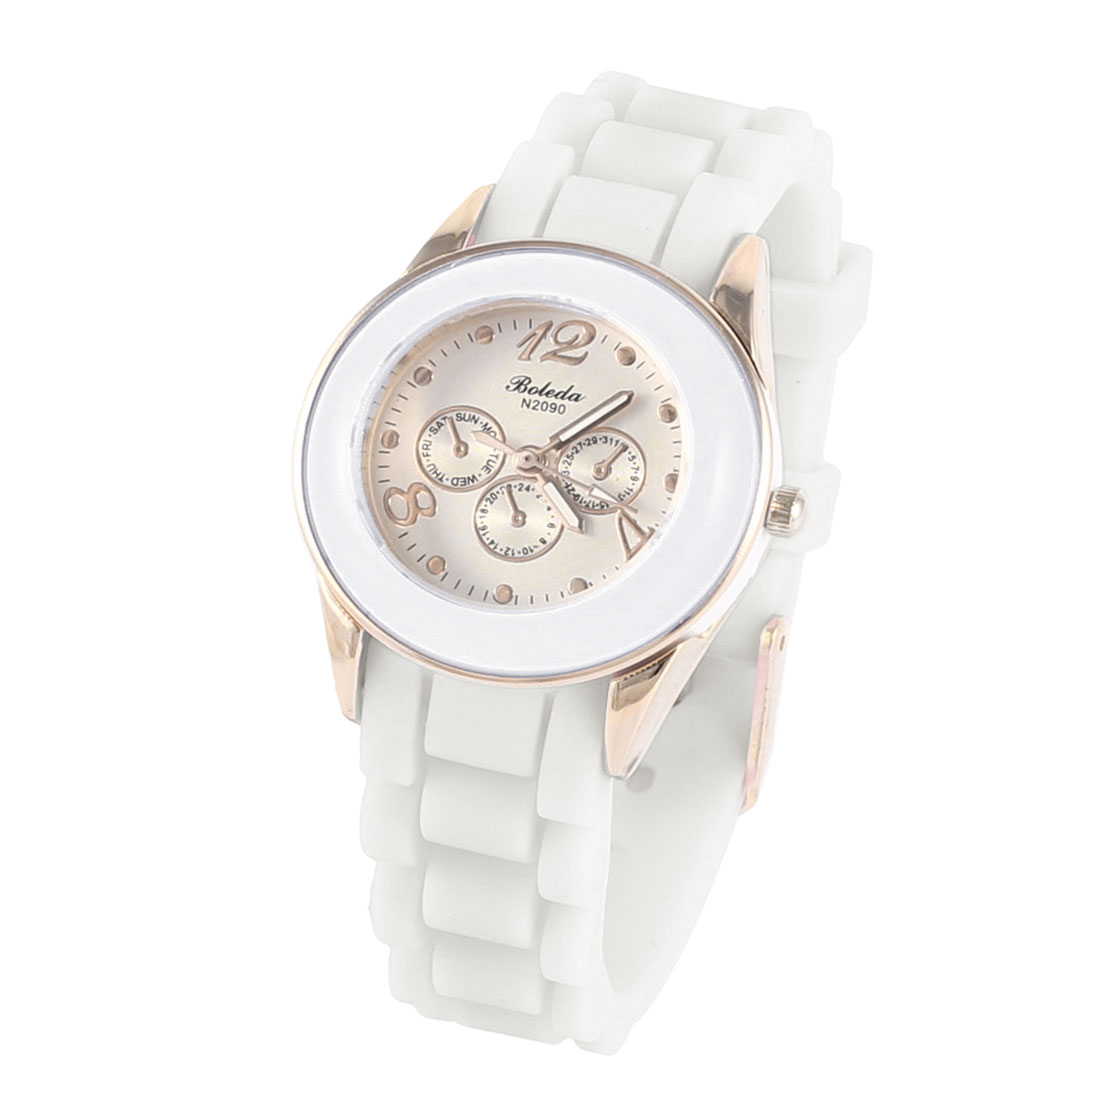 Woman 3.5cm Dia Dial Single Pin Buckle Silicone Wristband Quartz Watch White